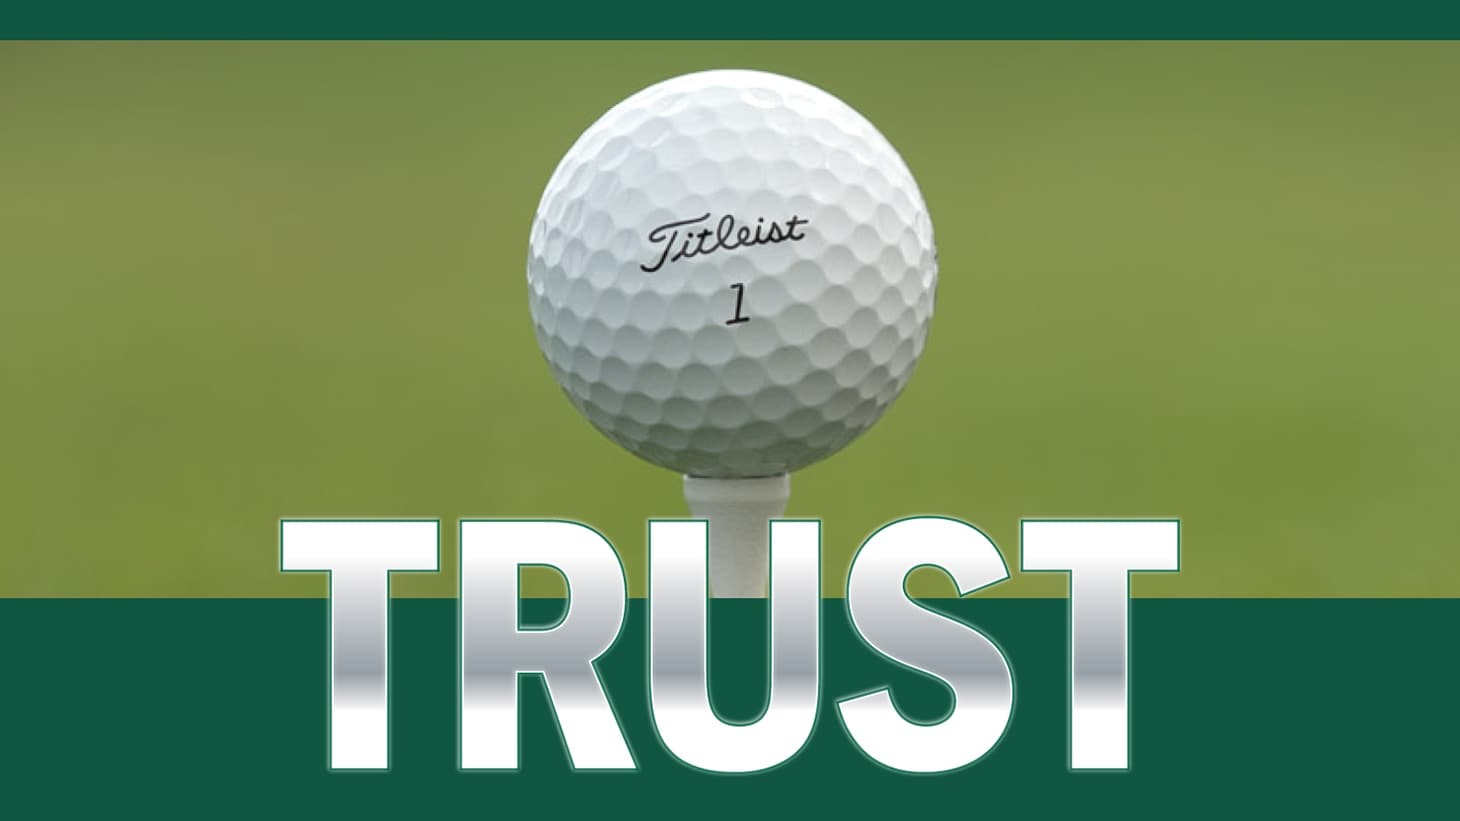 Titleist Pro V1 golf ball teed up at the 2018 Masters